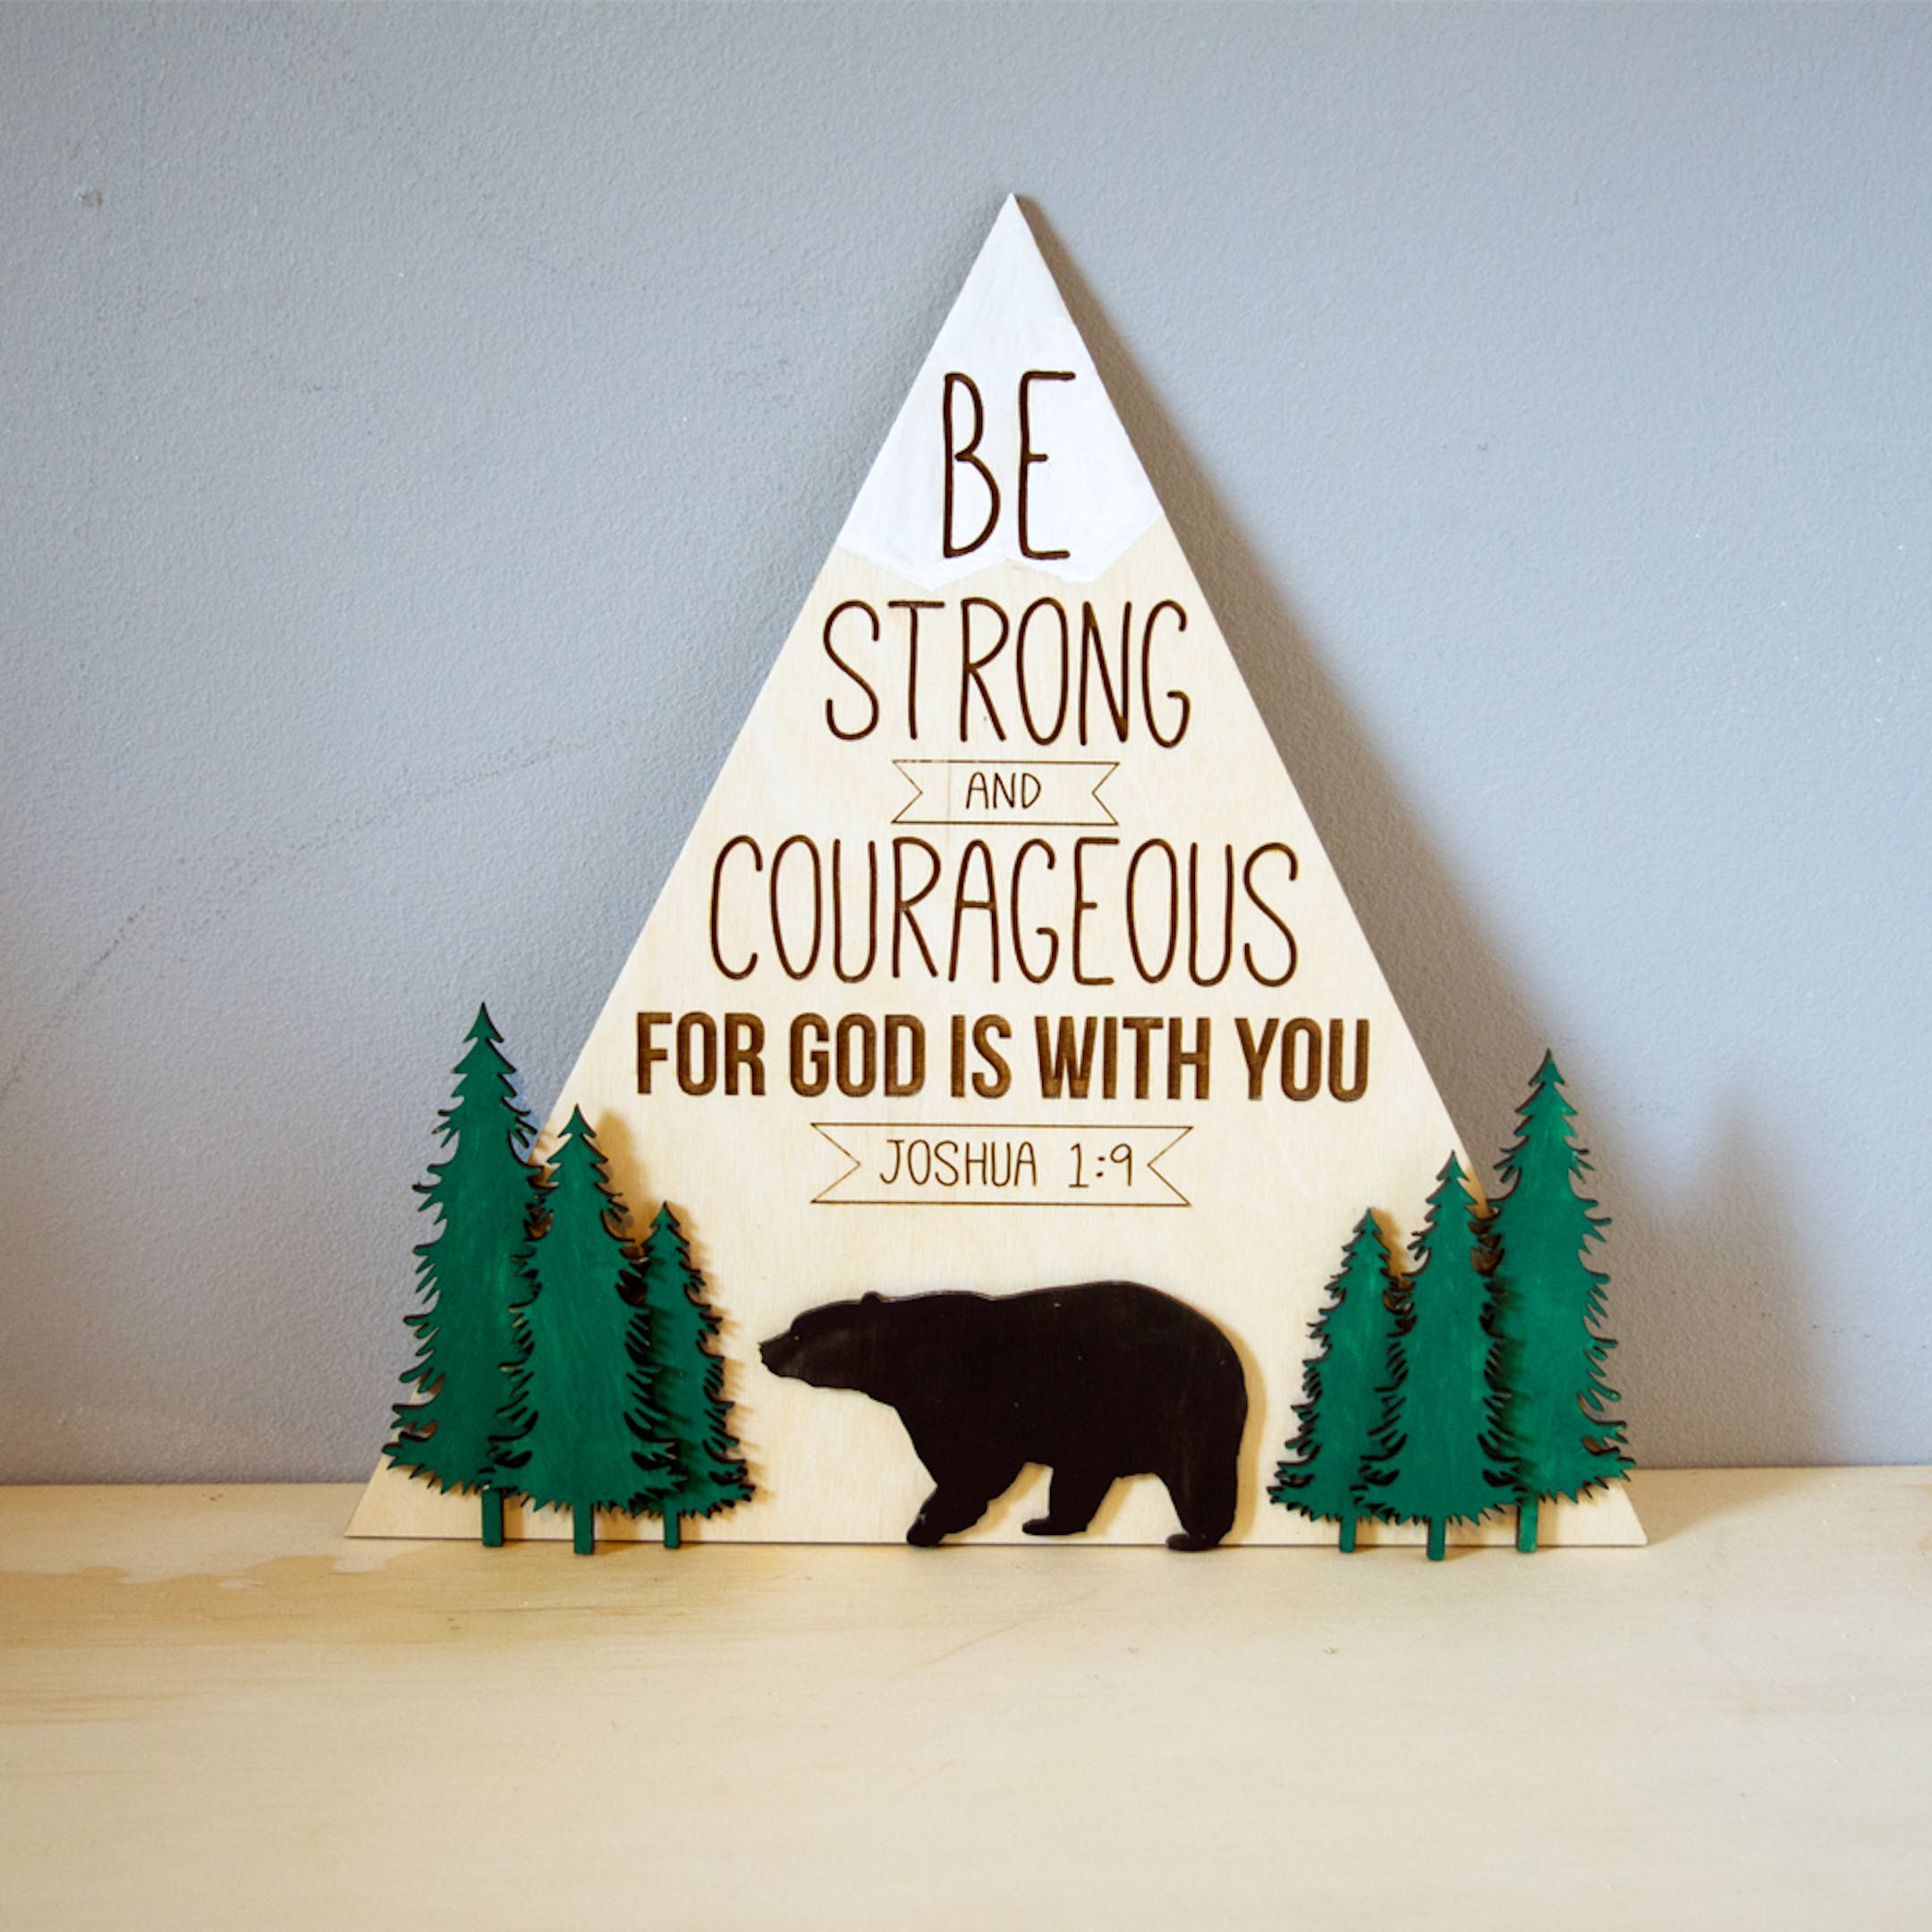 'Be Strong And Courageous' Wooden Nursery Sign - Joshua 1:9 - Birch and Tides